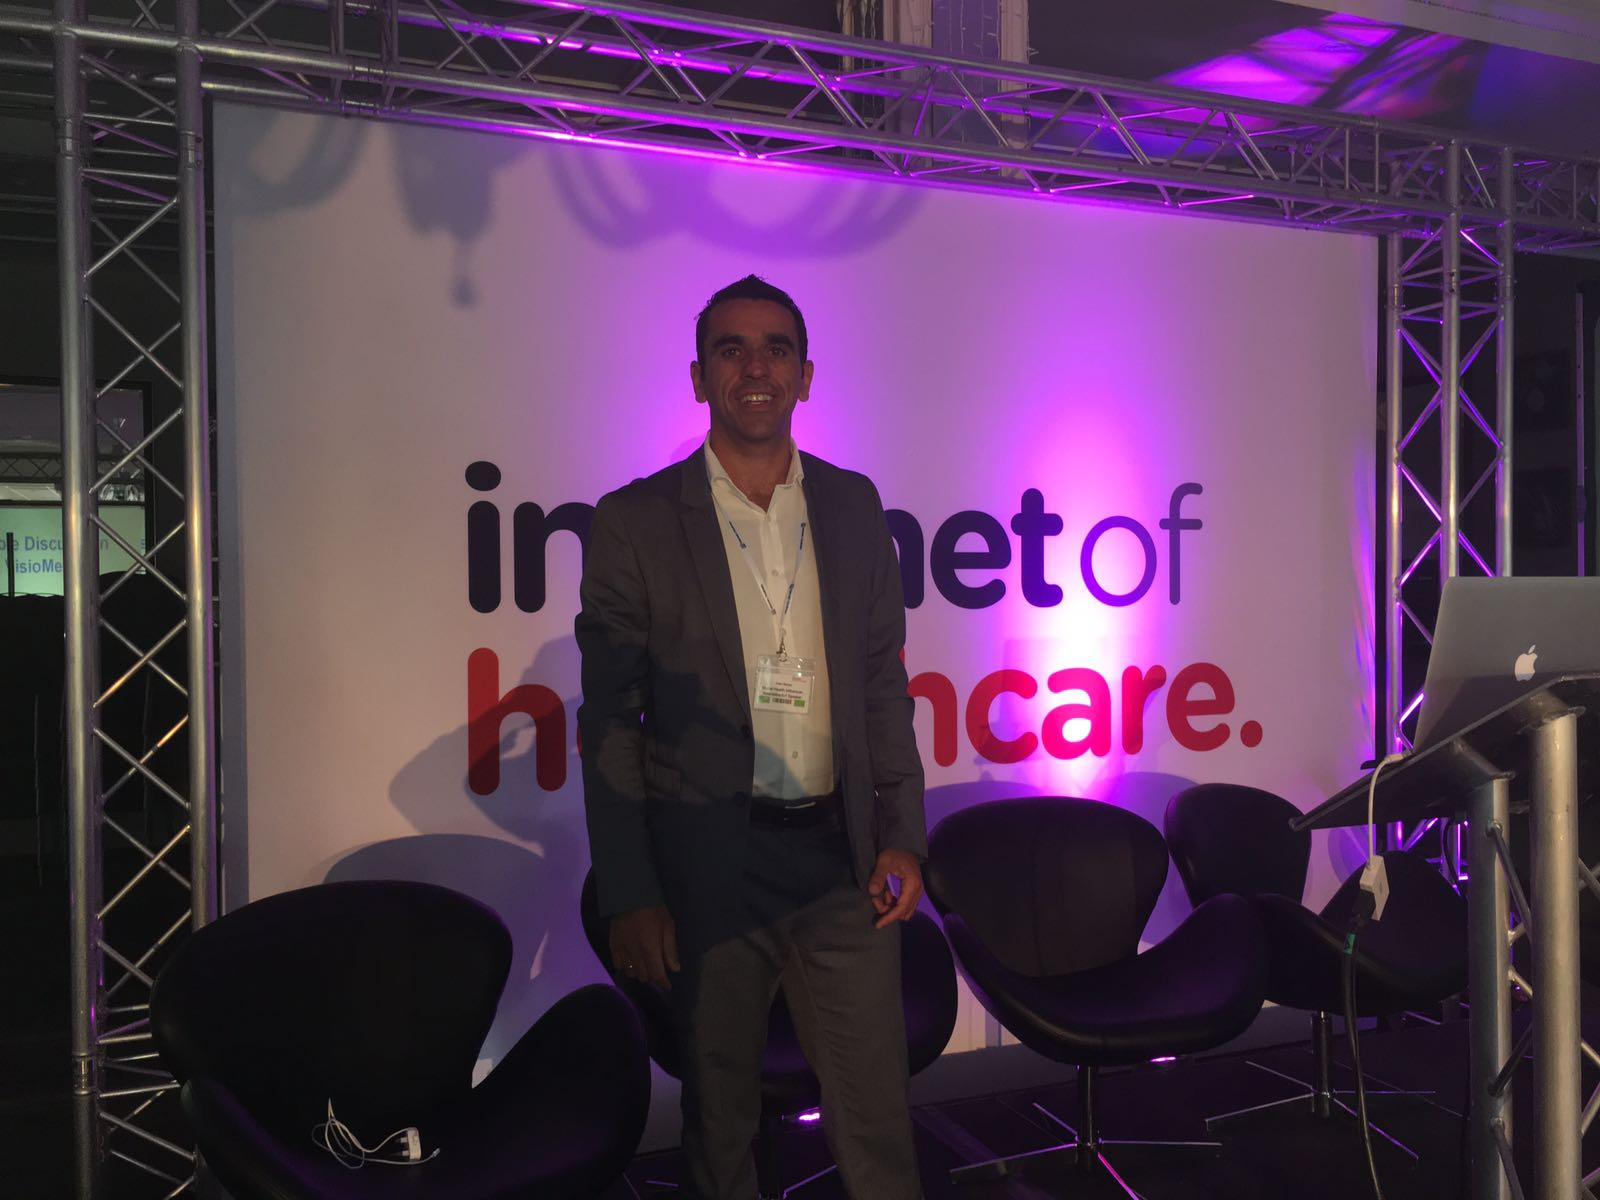 internet-of-healthcare-joao-bocas-digital-salutem